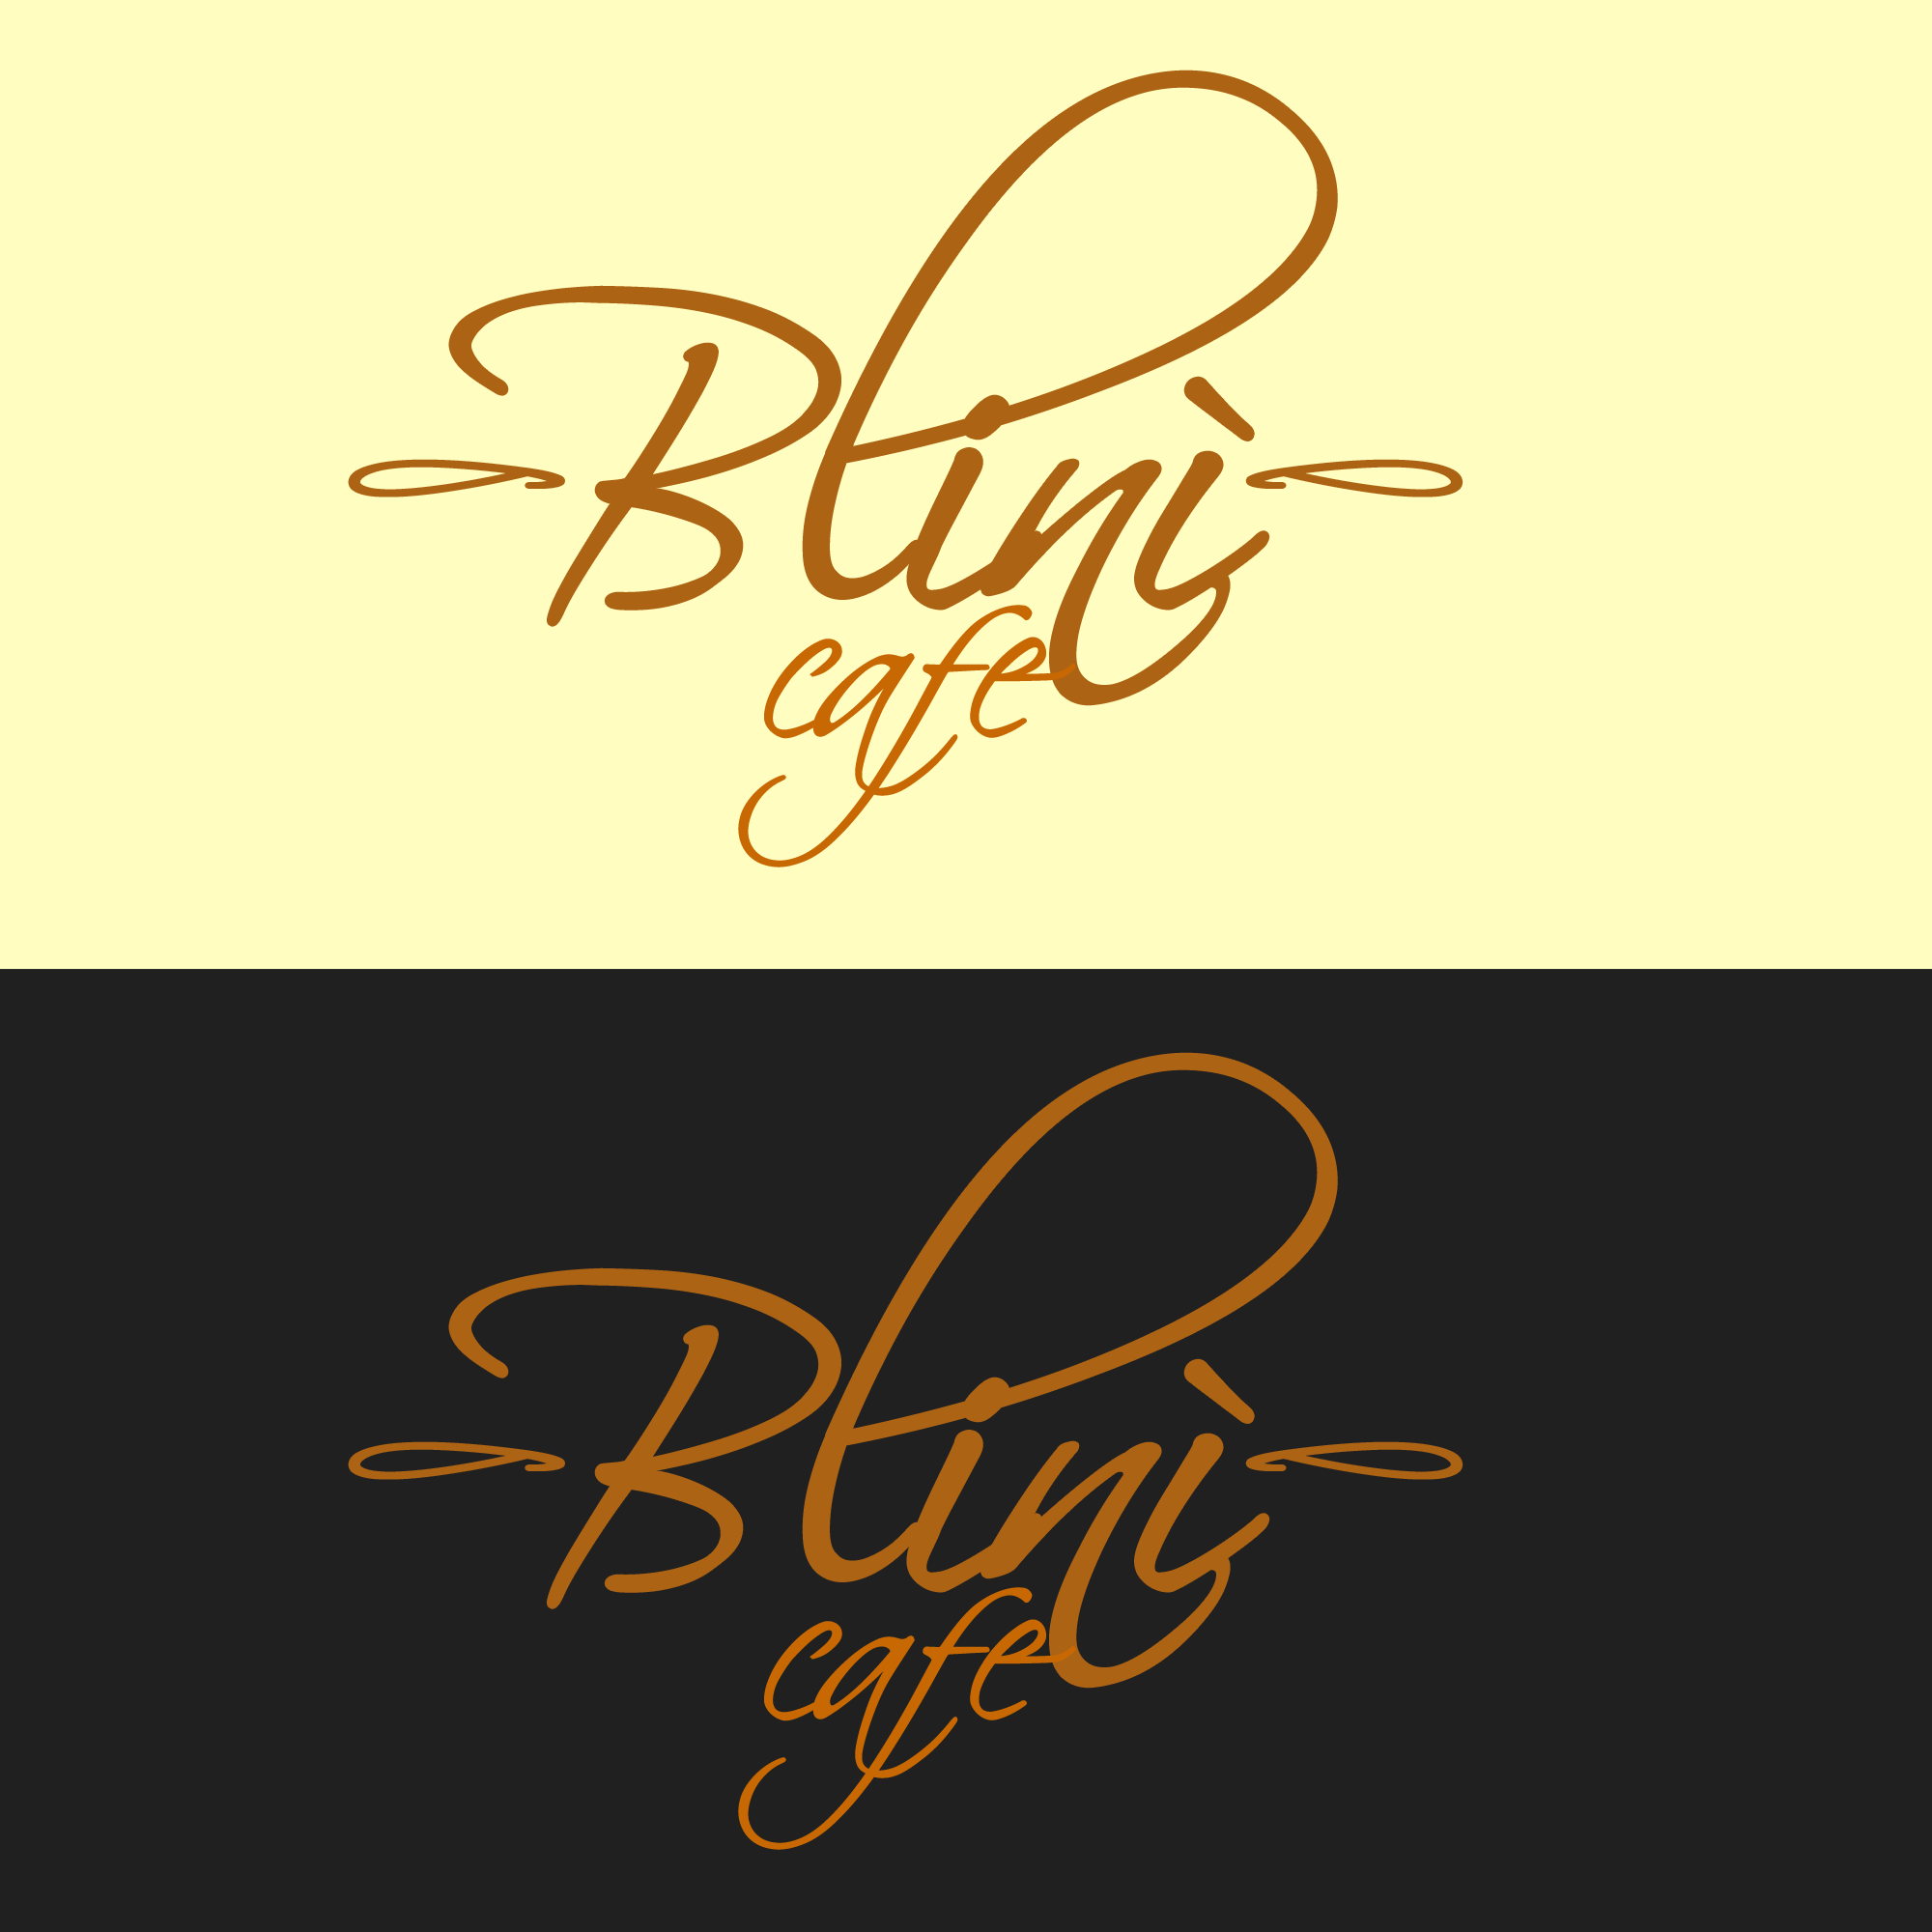 Logo Design by Kenneth Joel - Entry No. 50 in the Logo Design Contest Creative Logo Design for Blinì.